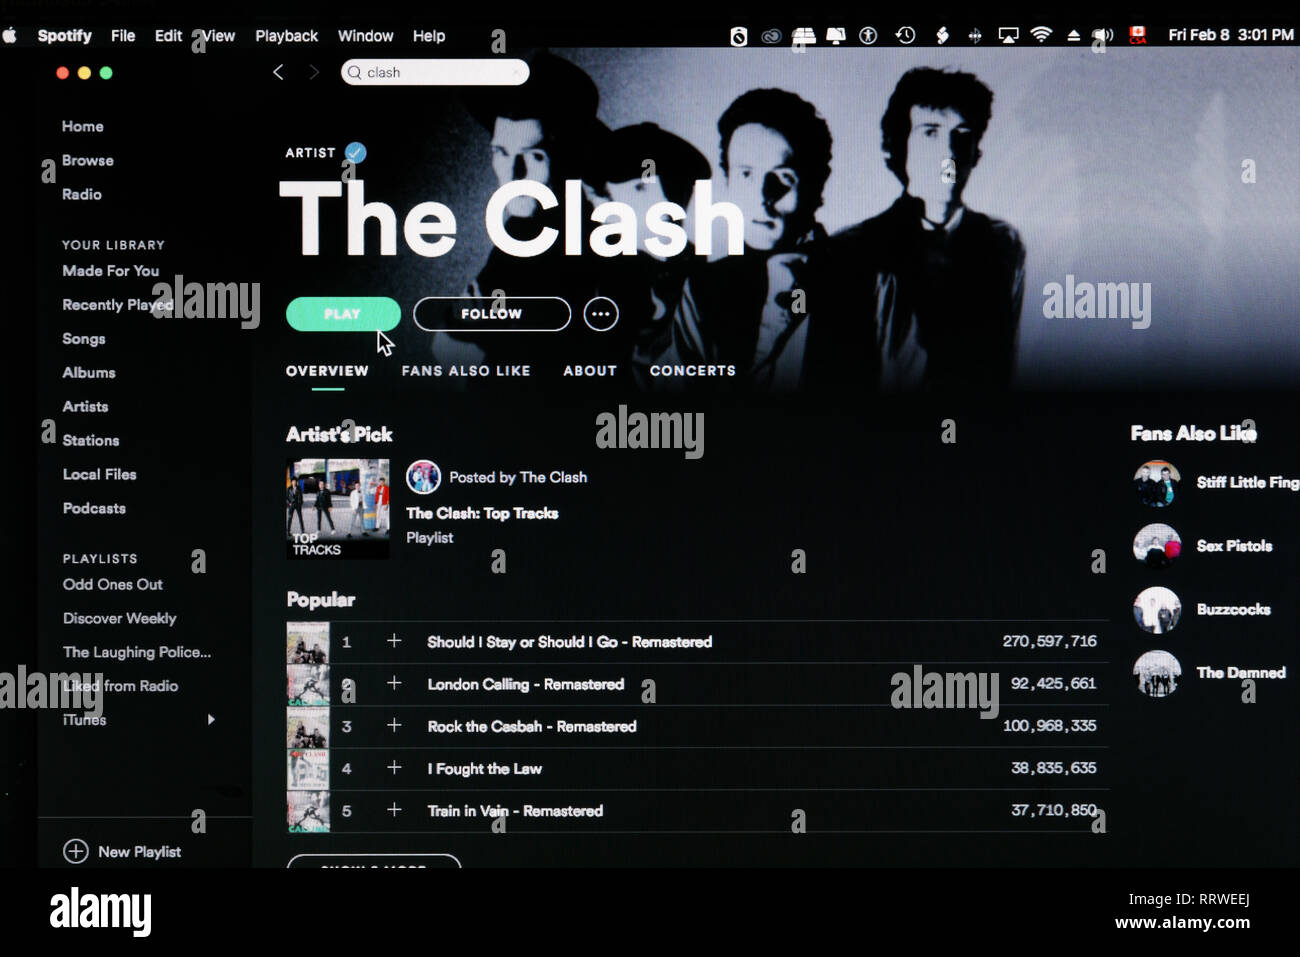 The Clash Spotify home page - Stock Image